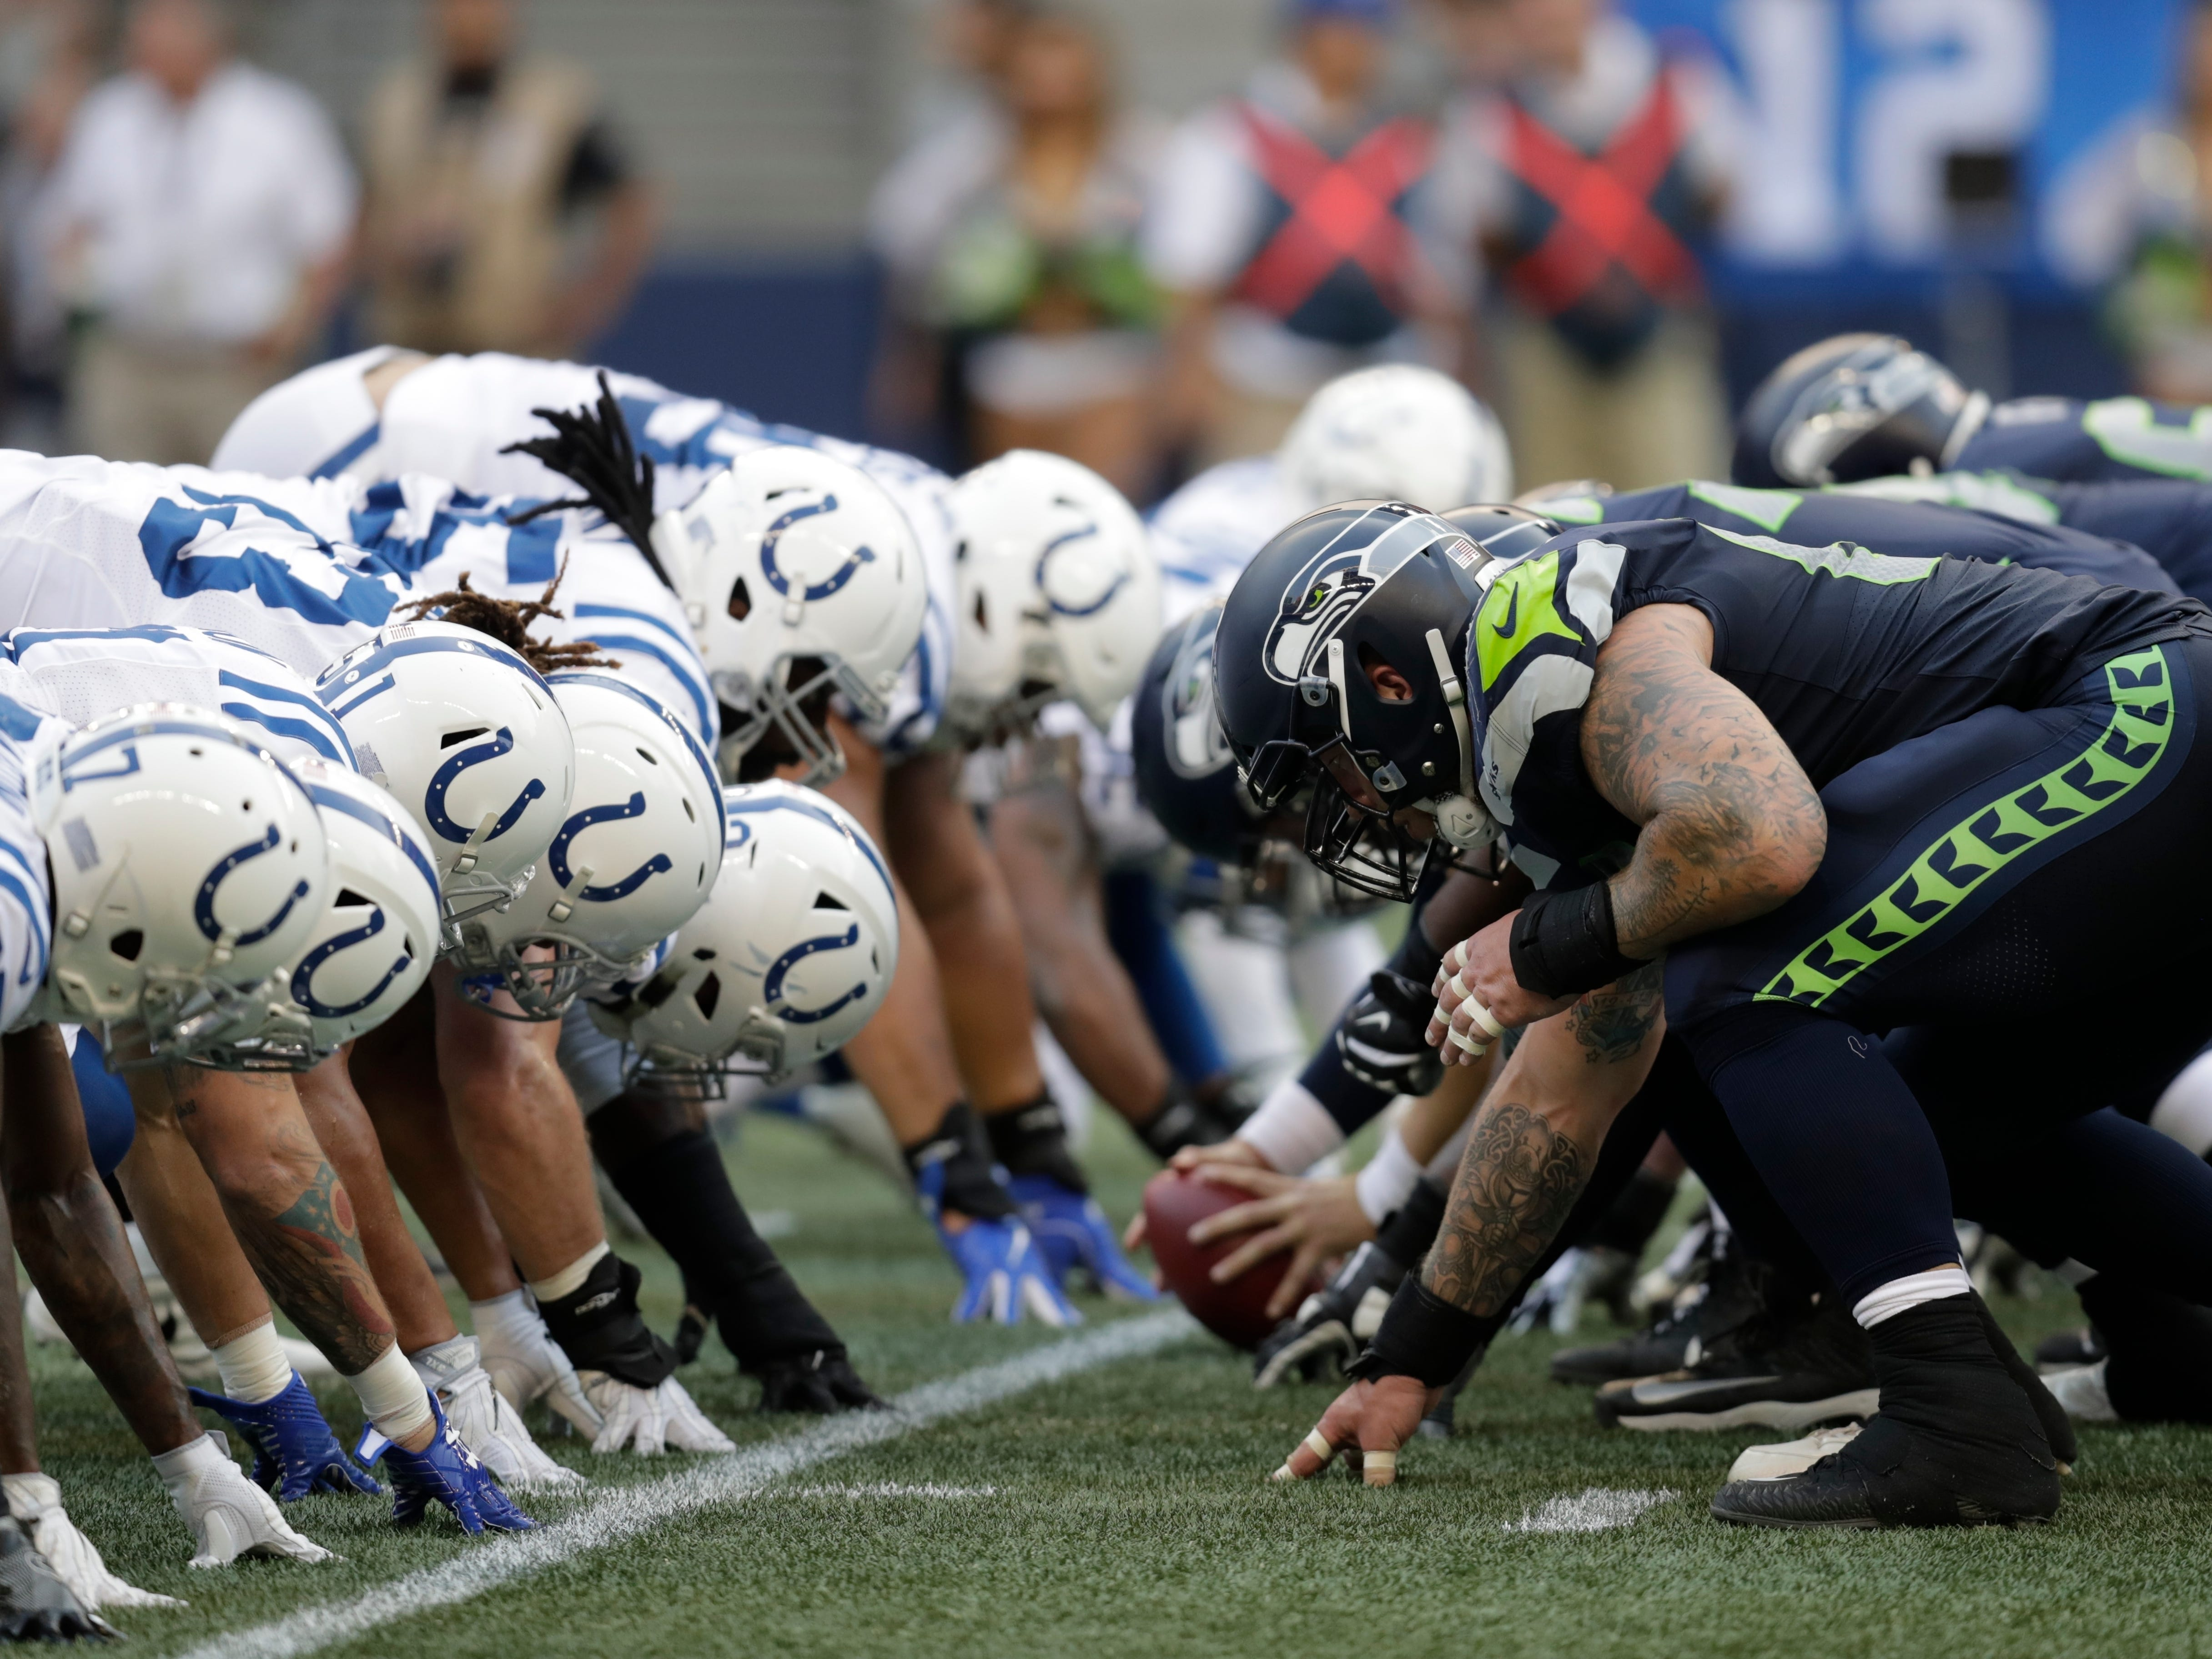 Seattle Seahawks and Indianapolis Colts players line up on the line of scrimmage during the first half of an NFL football preseason game, Thursday, Aug. 9, 2018, in Seattle.